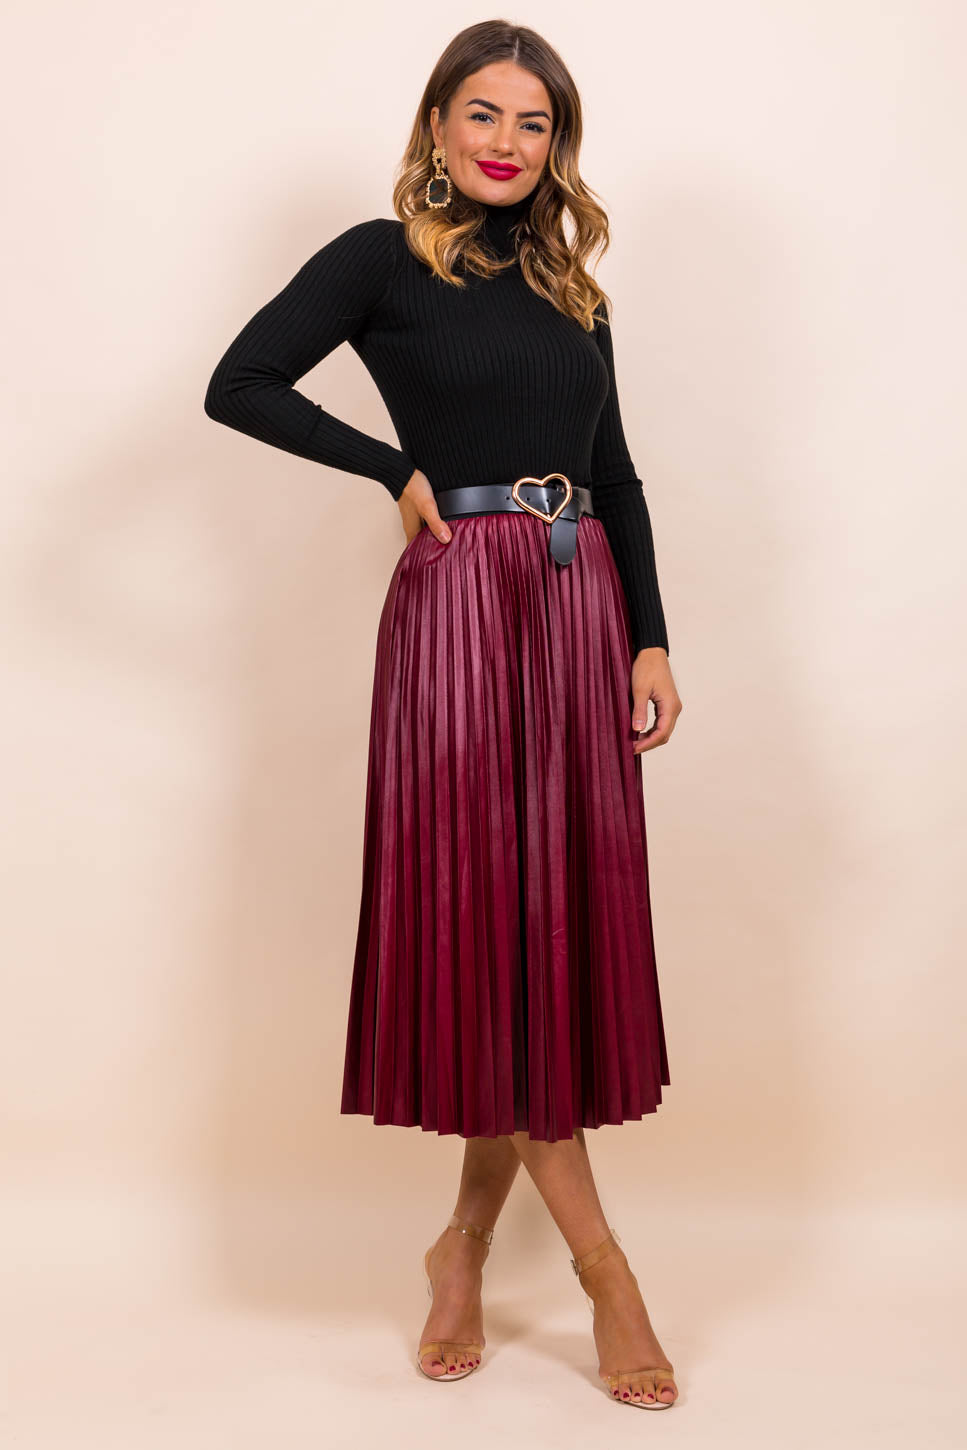 https://cdn.shopify.com/s/files/1/0062/6661/7925/files/product-video-pleat_me_halfway-skirt-in-wine.mp4?5988